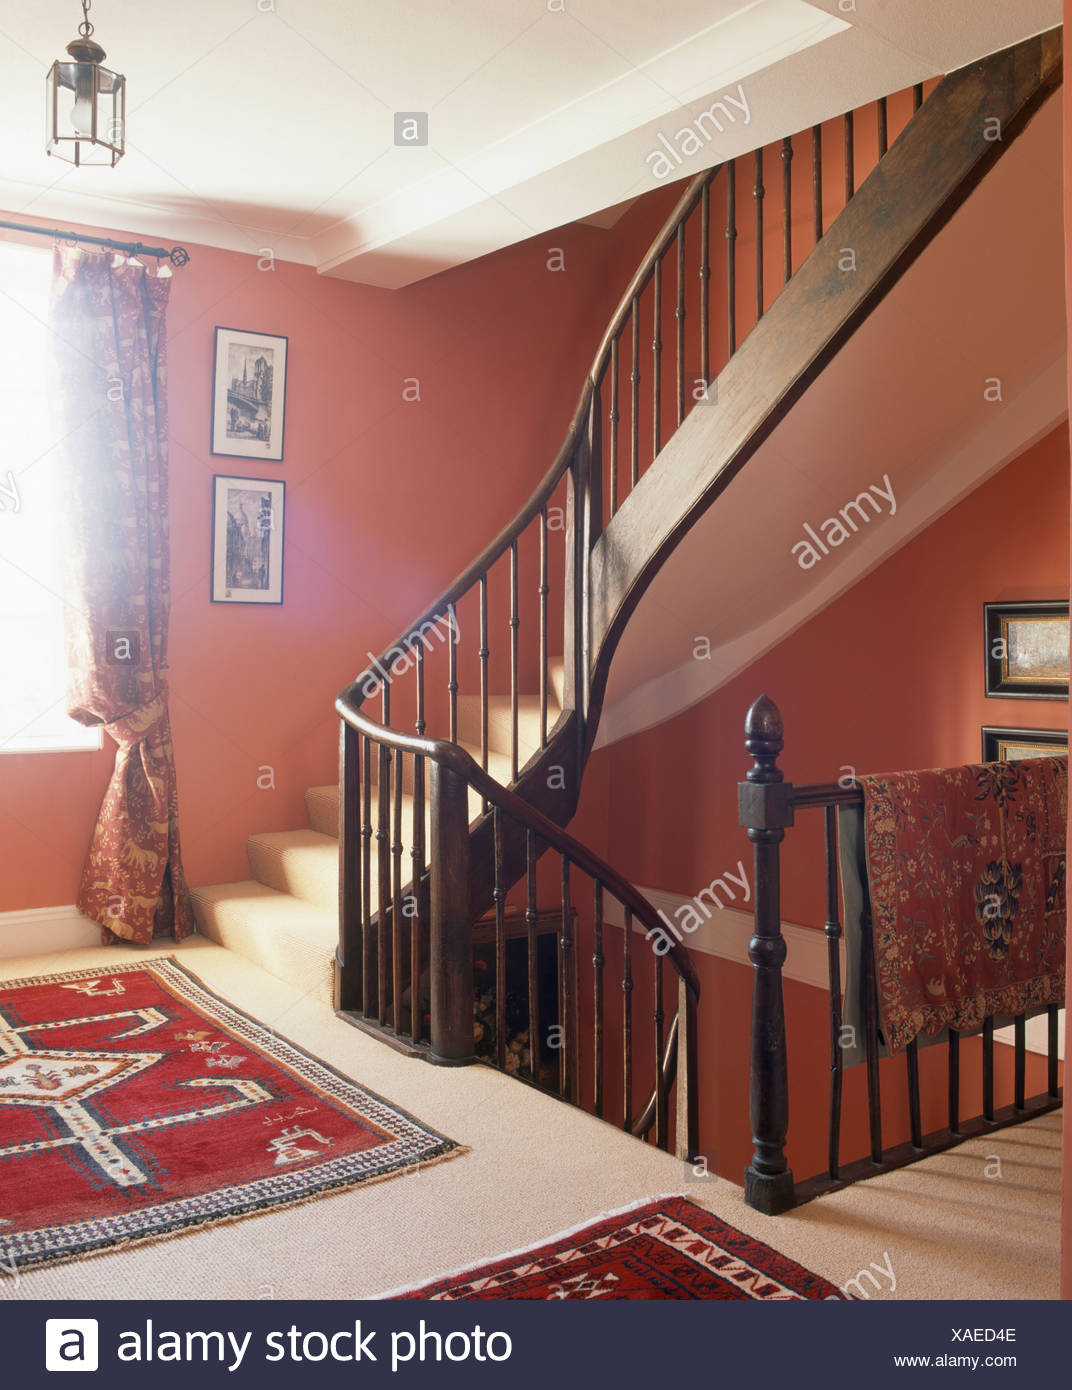 Dark Wood Banisters On Staircase In Red Landing With Persian Rugs On